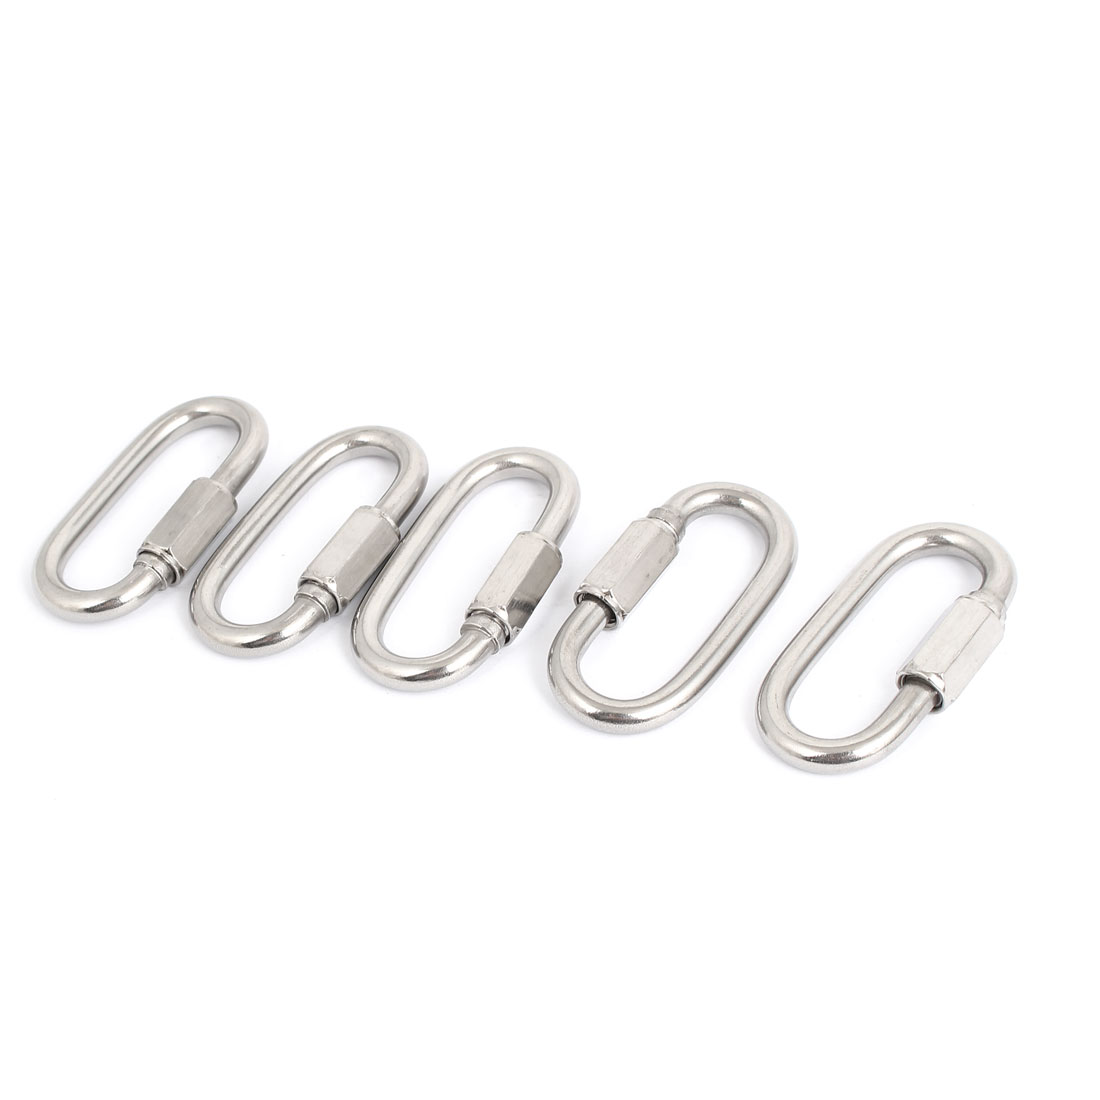 5pcs M6 Stainless Steel Hook Quick Link Chain Rope Cable Connector